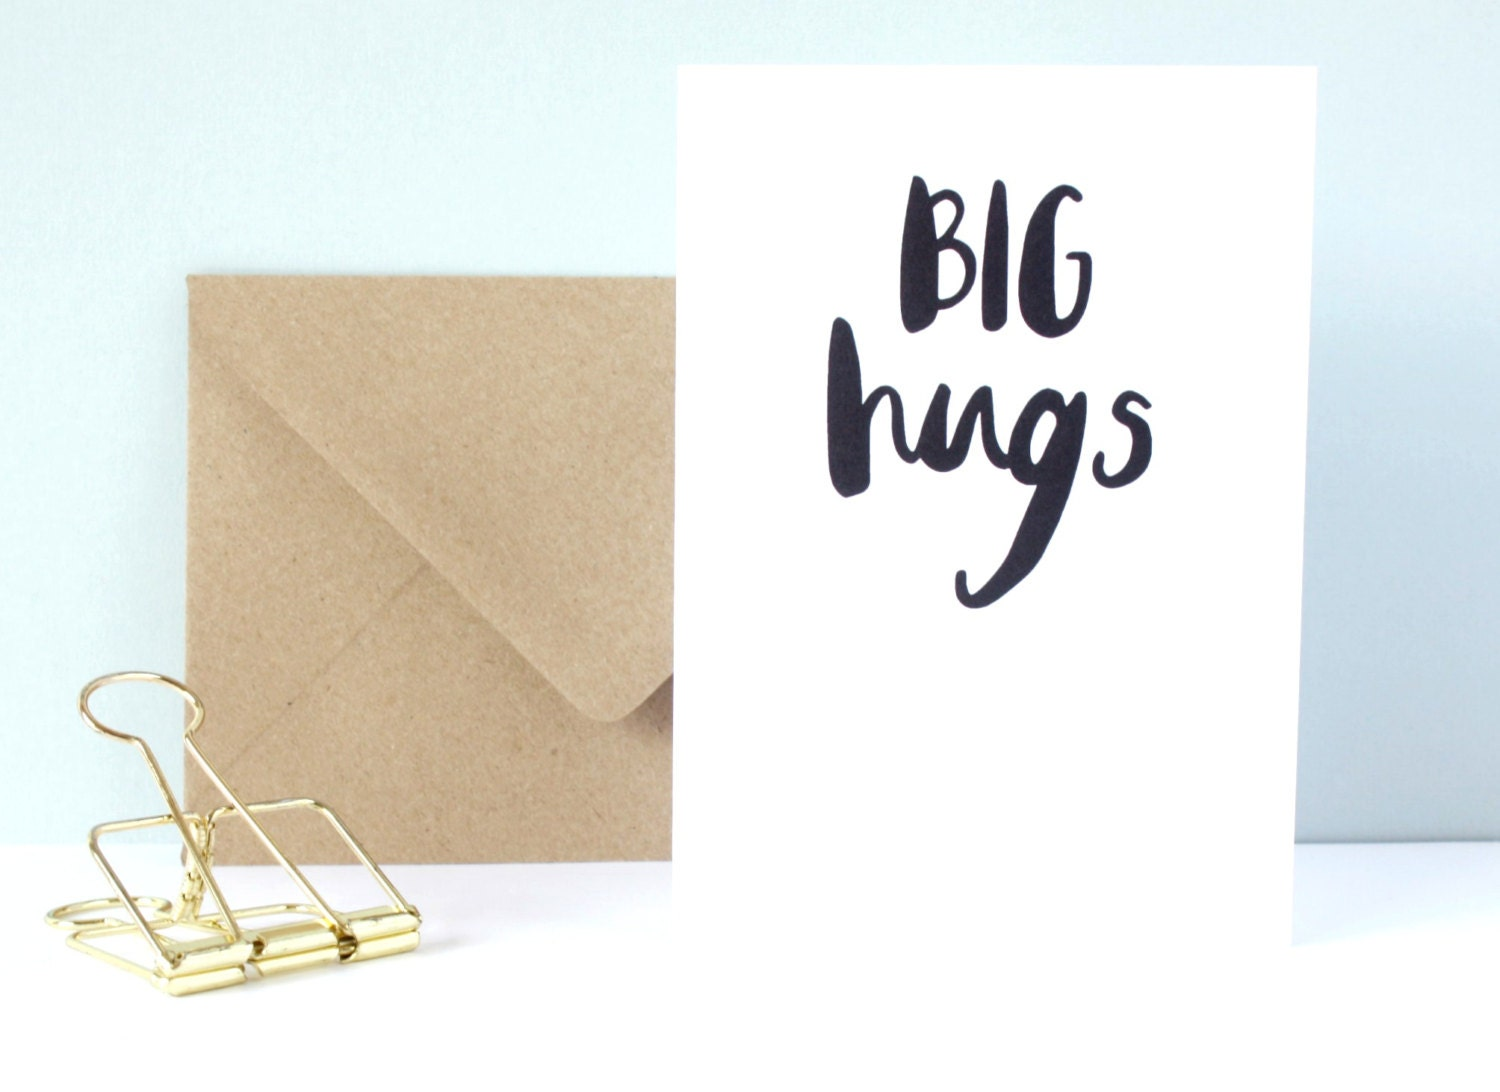 Sympathy Images | Free download on ClipArtMag |Hug Messages Sympathy